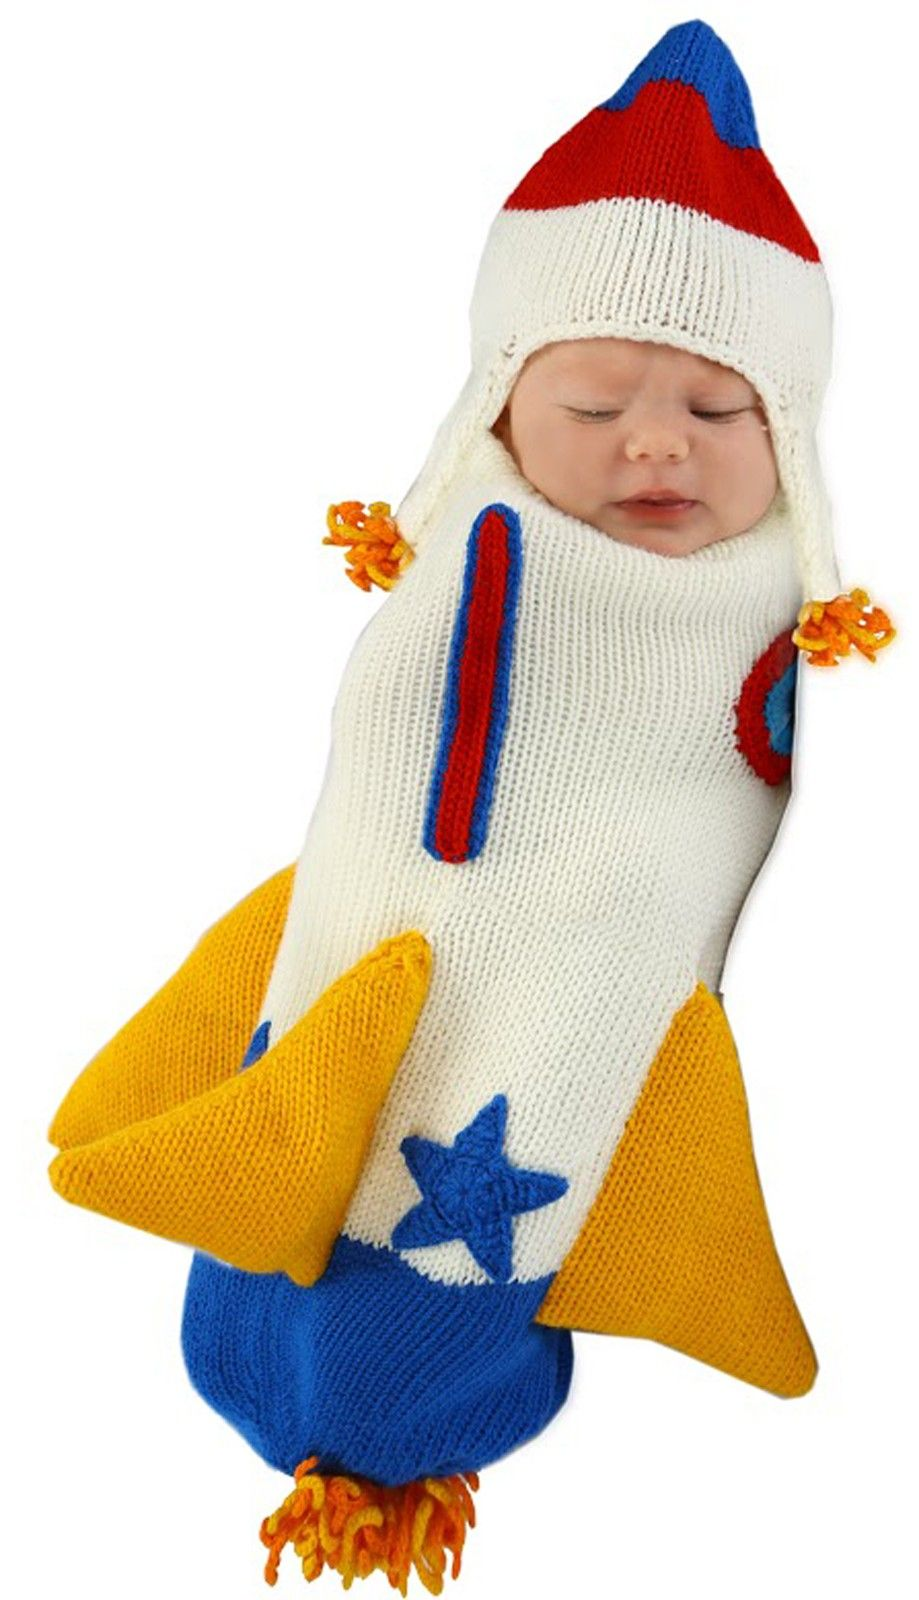 roger the rocket ship infant bunting | astronaut costumes